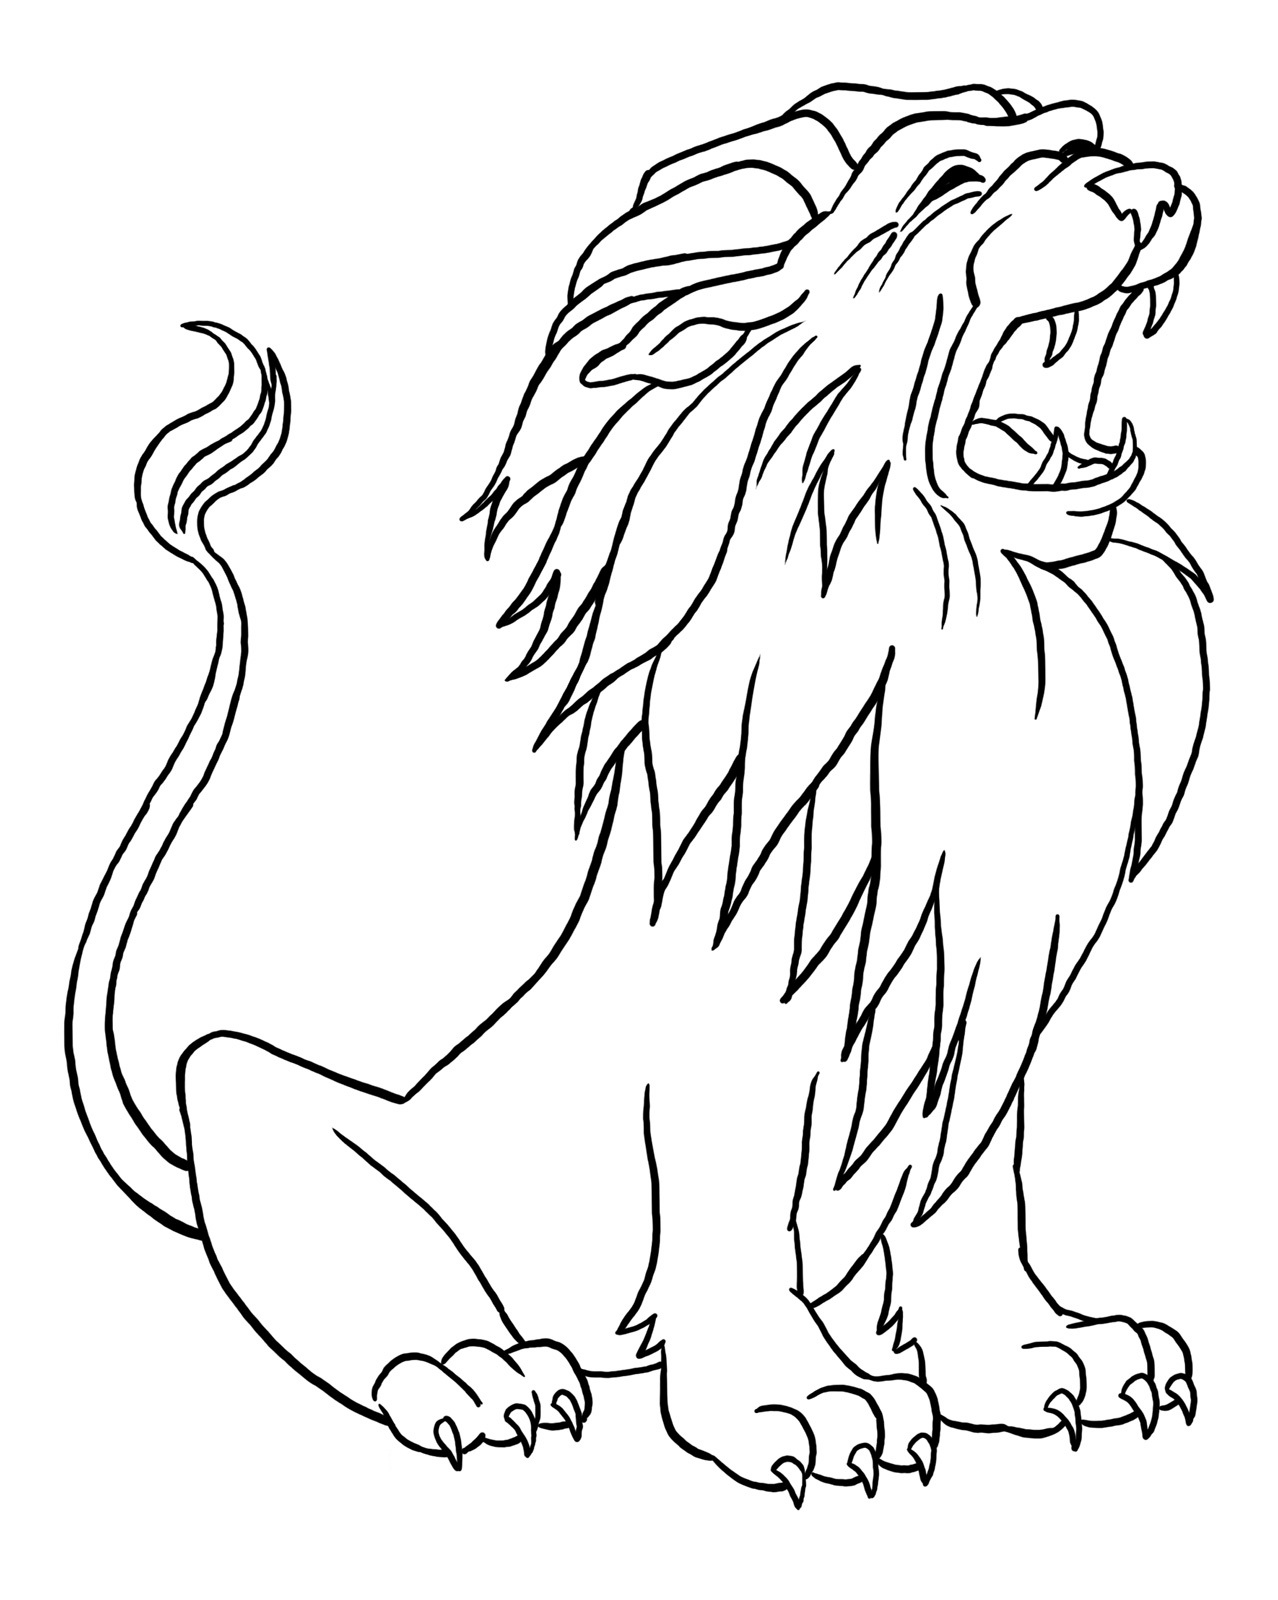 graphic about Printable Lion Coloring Pages known as Free of charge Printable Lion Coloring Web pages For Small children